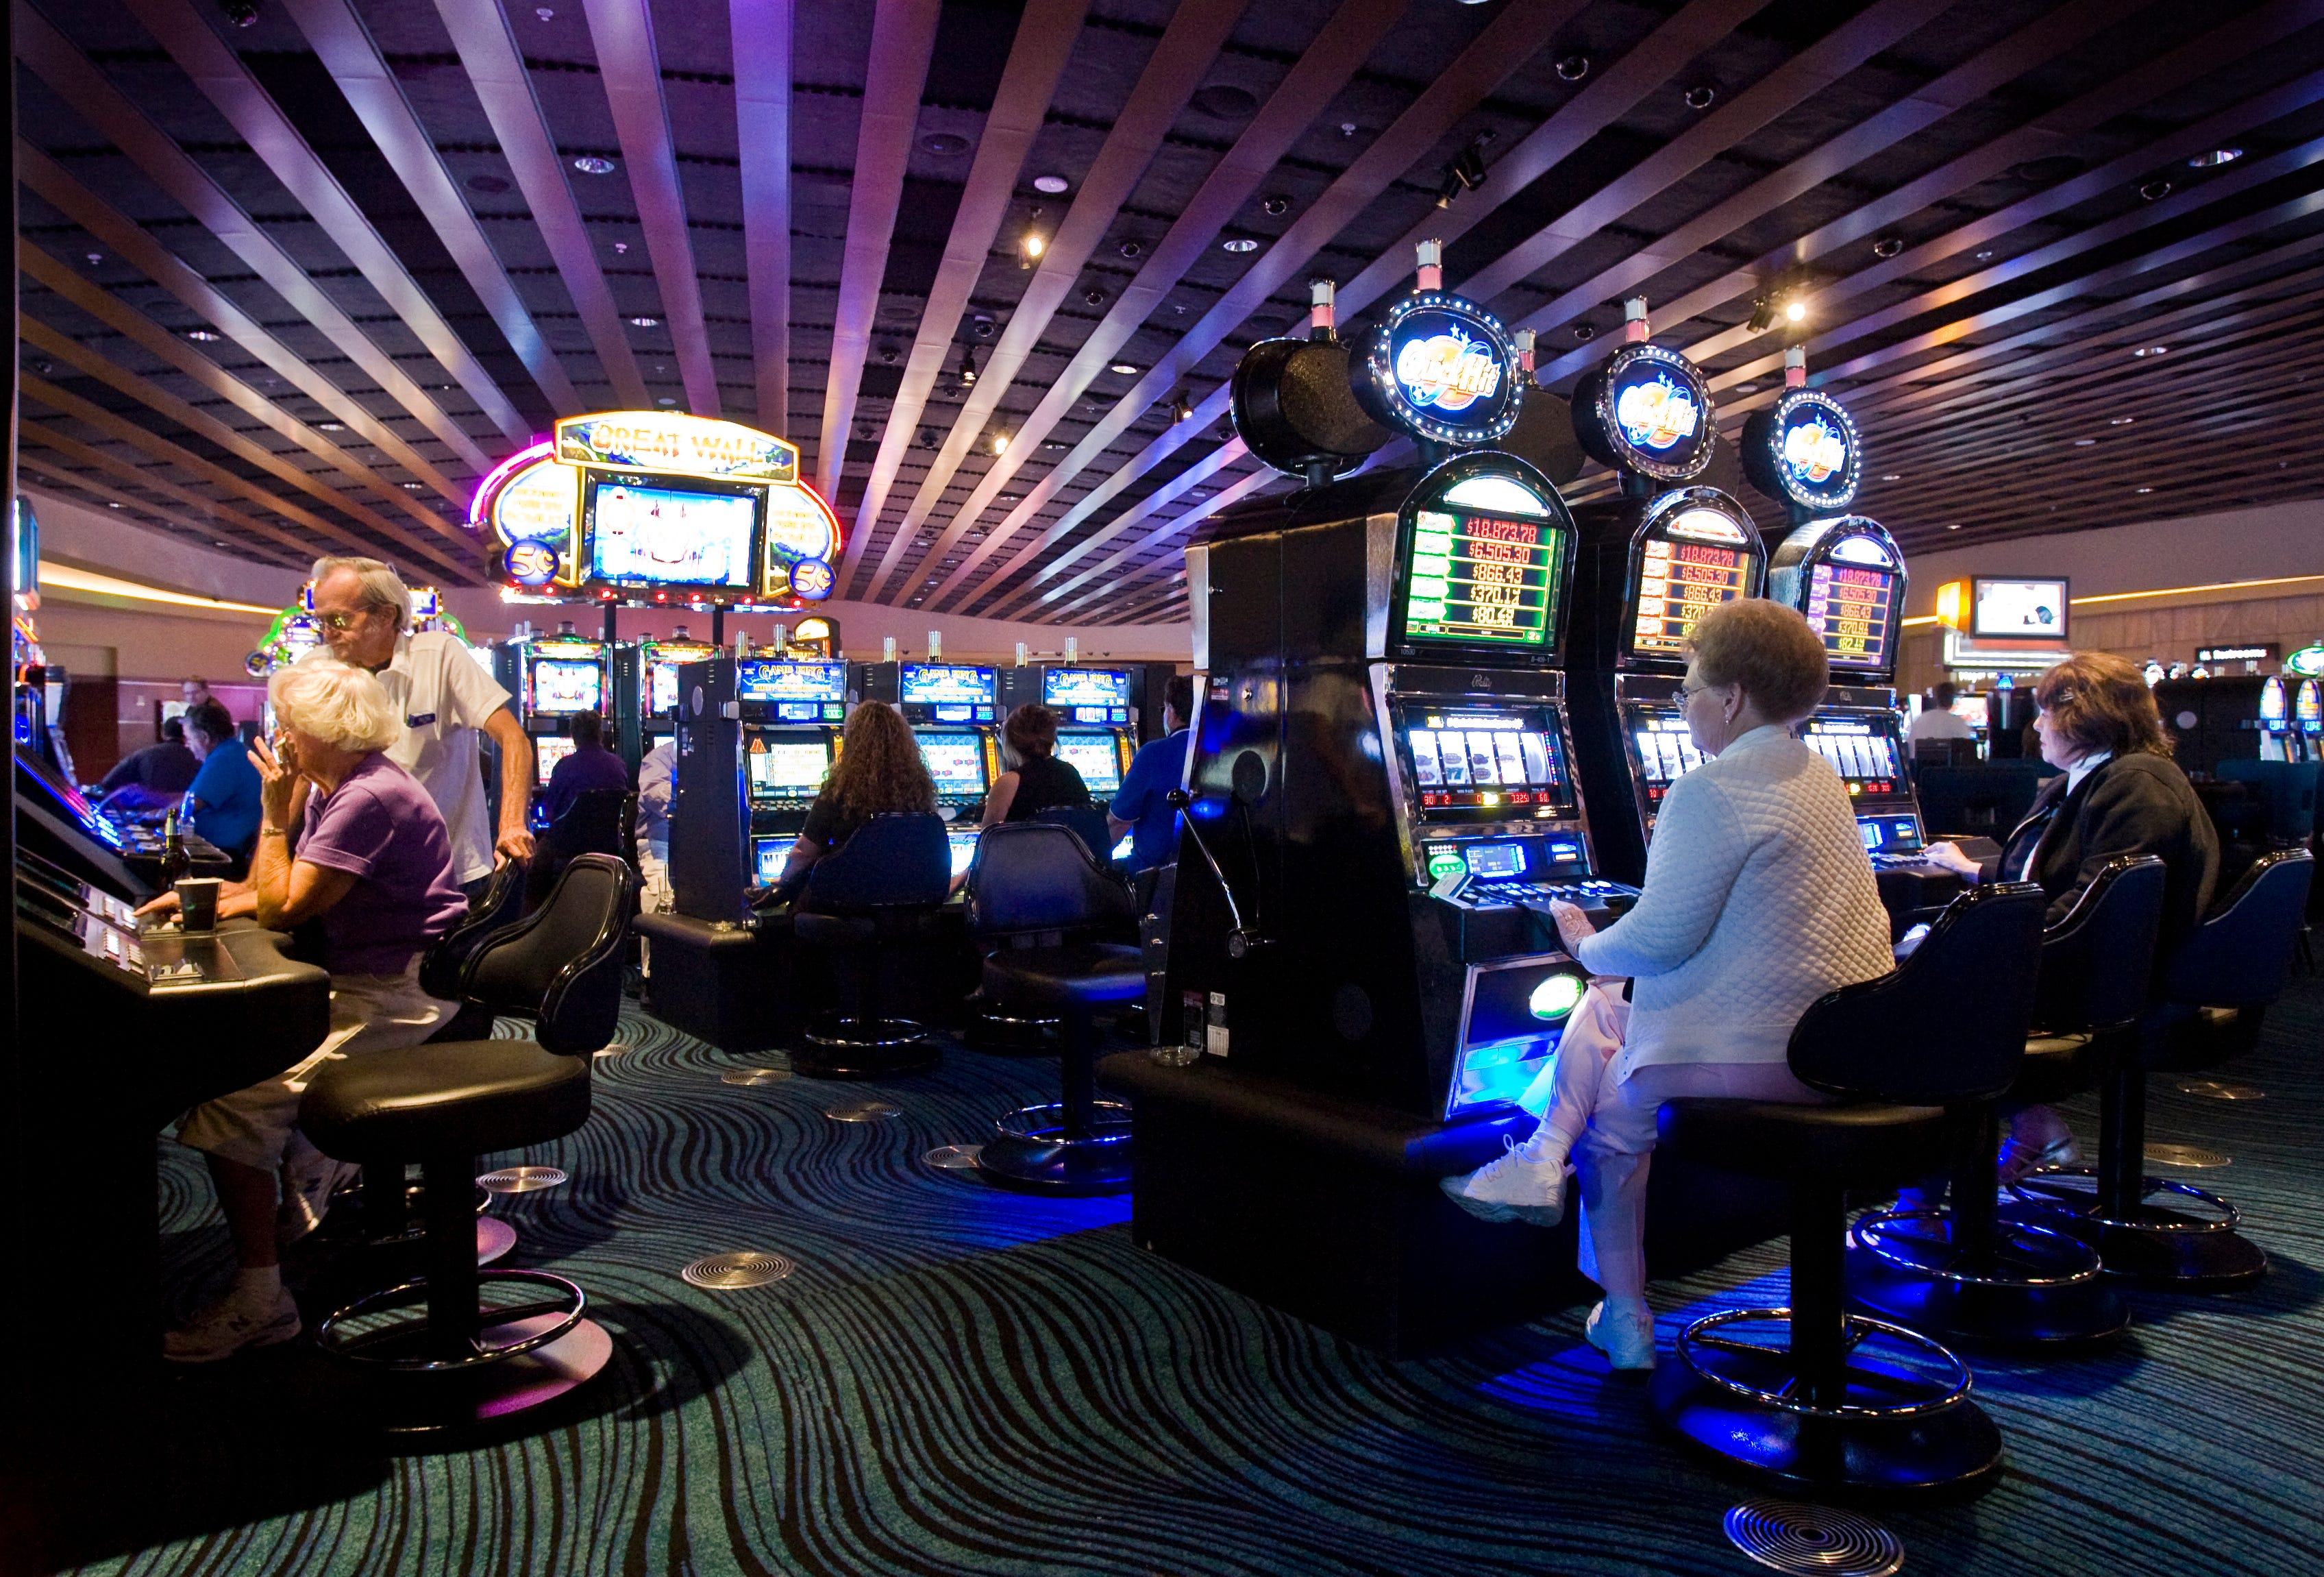 Scottsdale gambling casinos bonus codes casino cruise